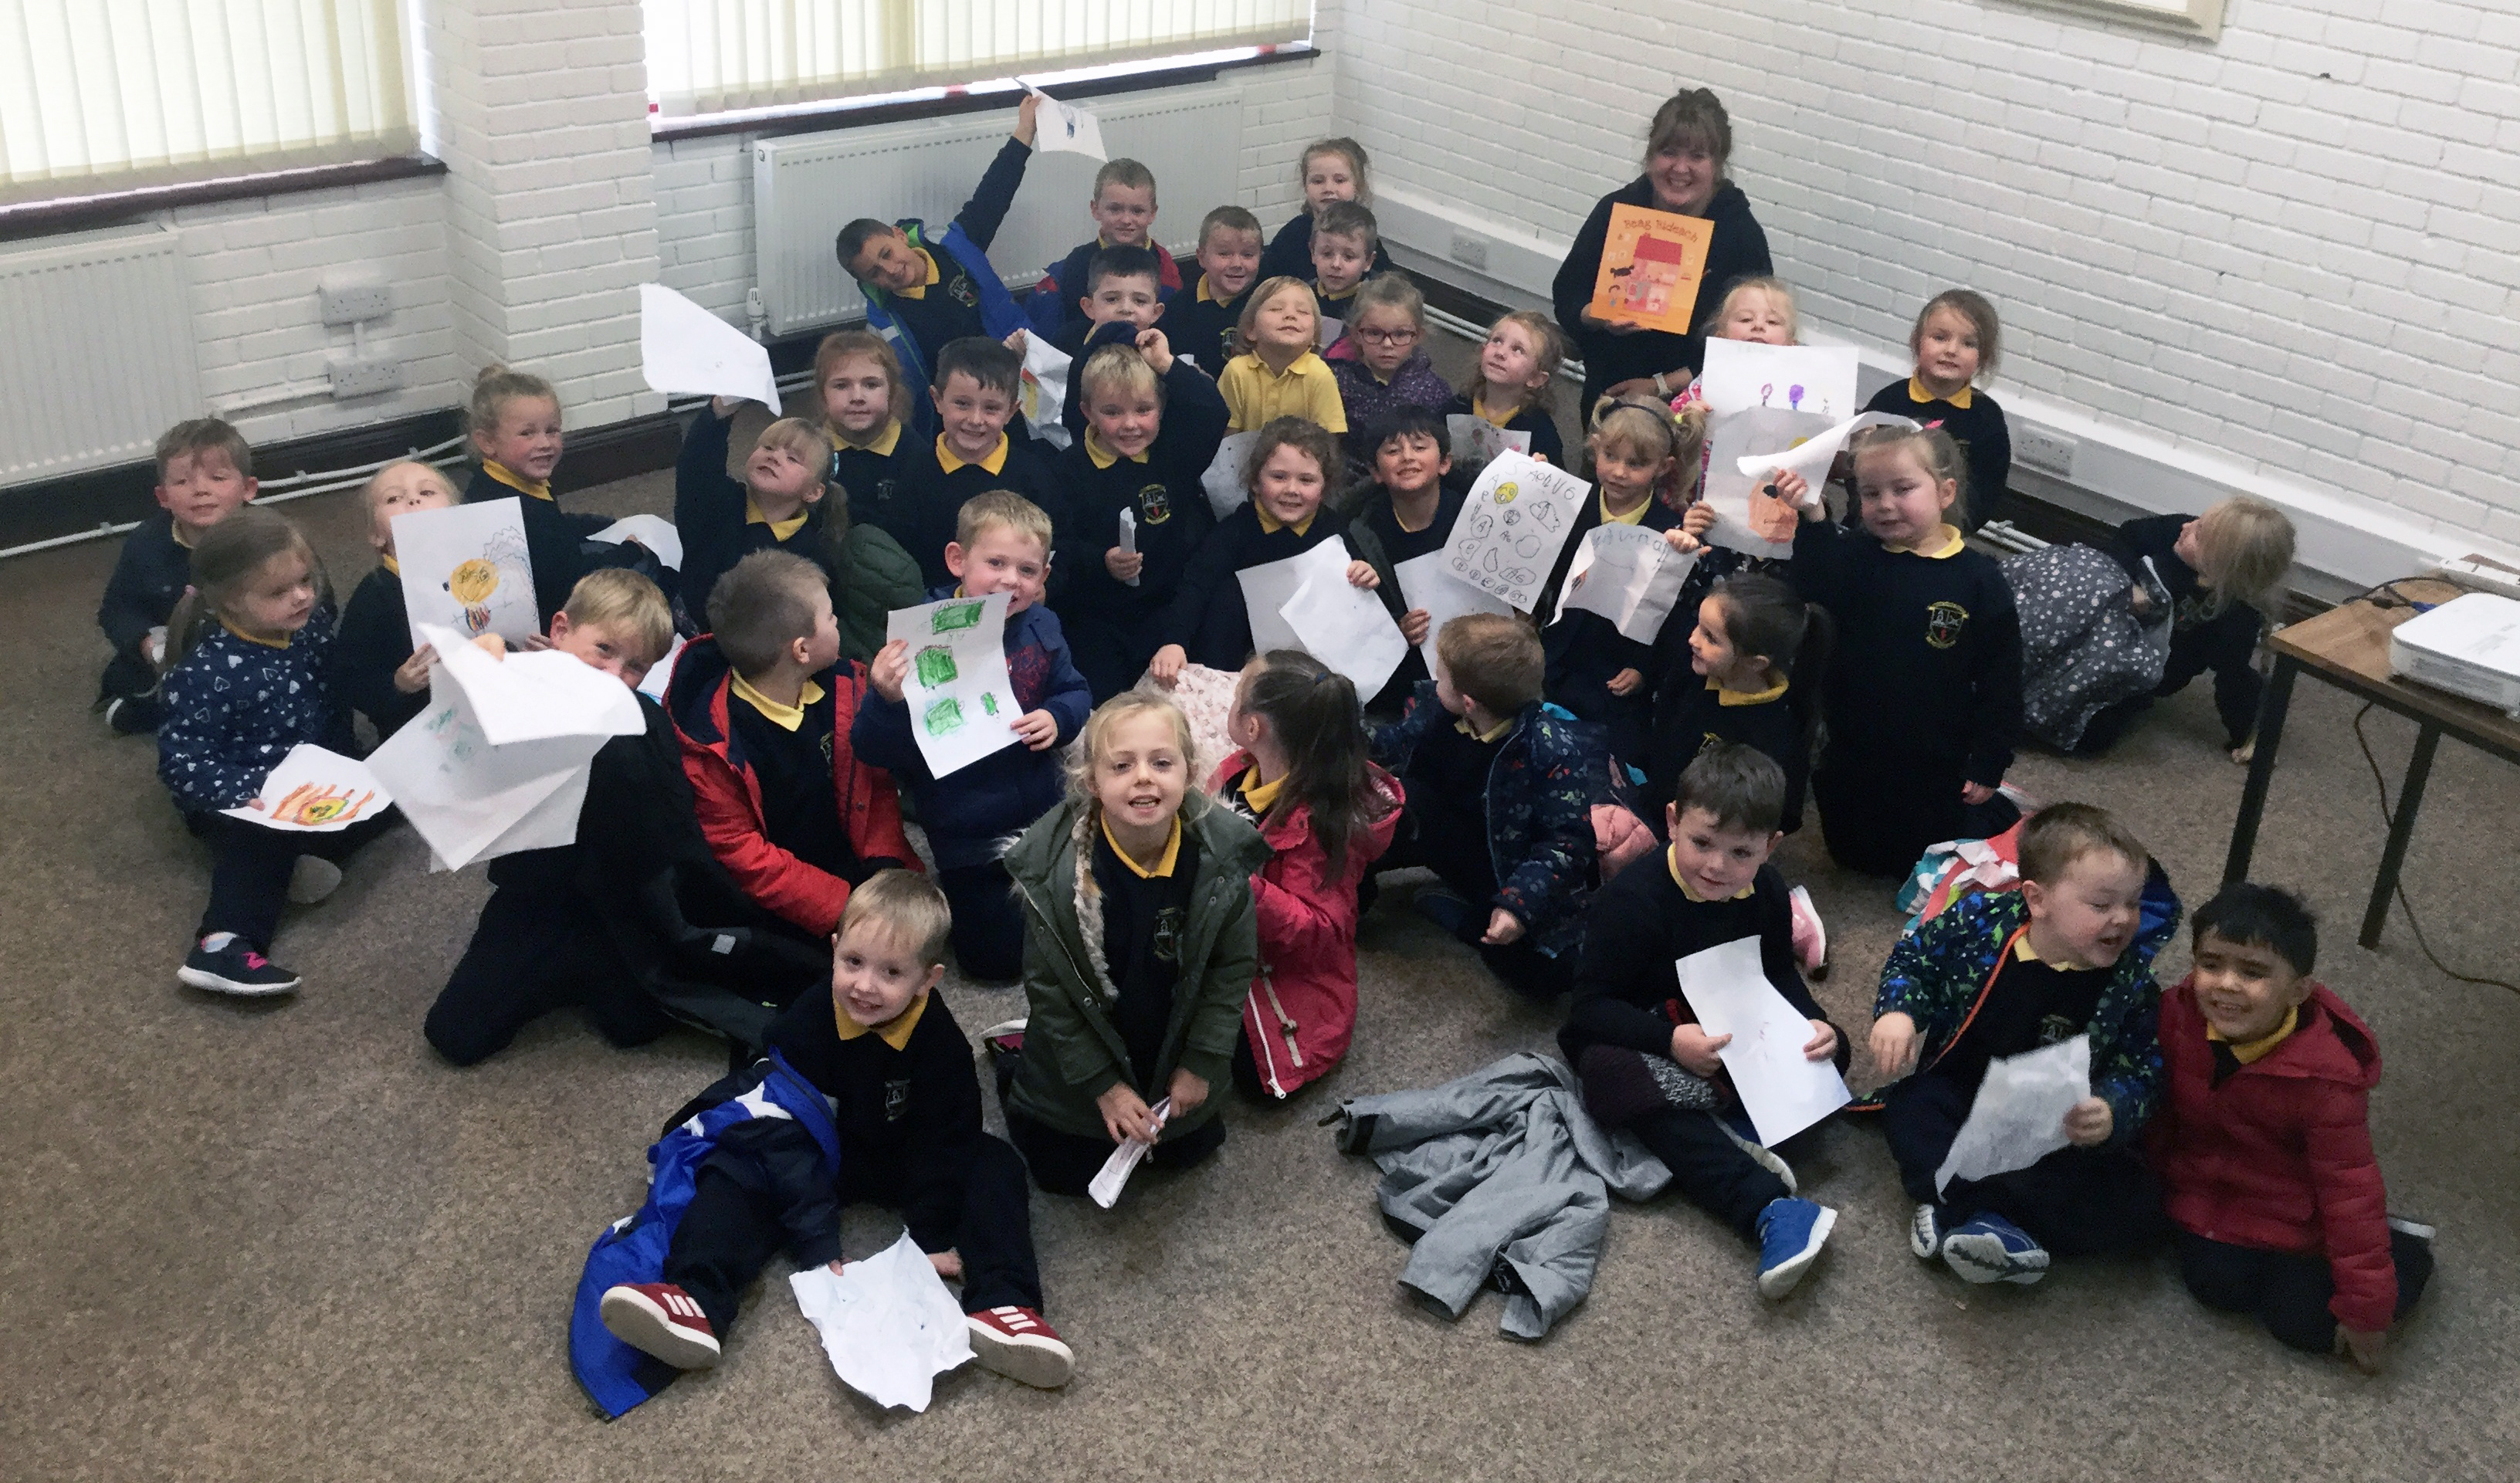 Sadhbh Devlin Visits Roscrea Library